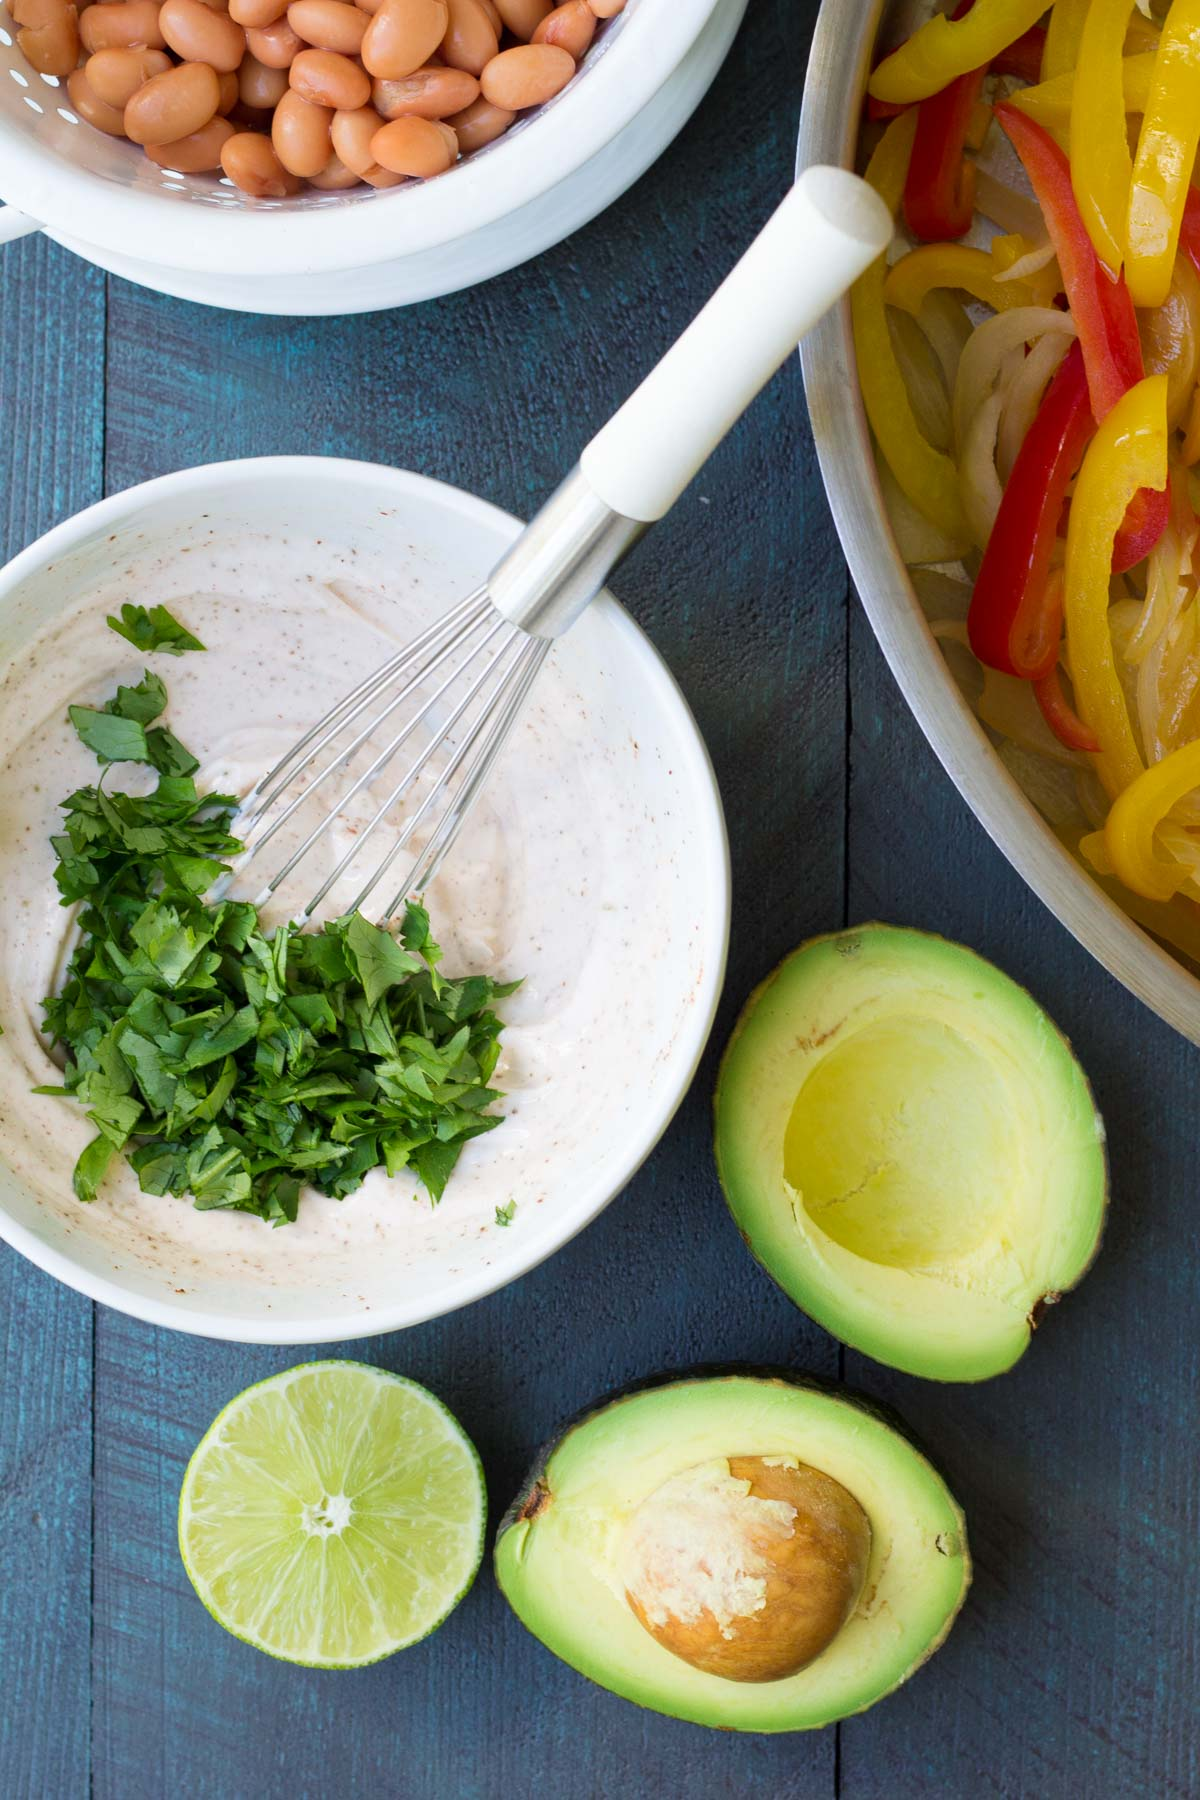 These Creamy Avocado Vegetable Burritos are a healthy 30 minute dinner recipe! | www.kristineskitchenblog.com